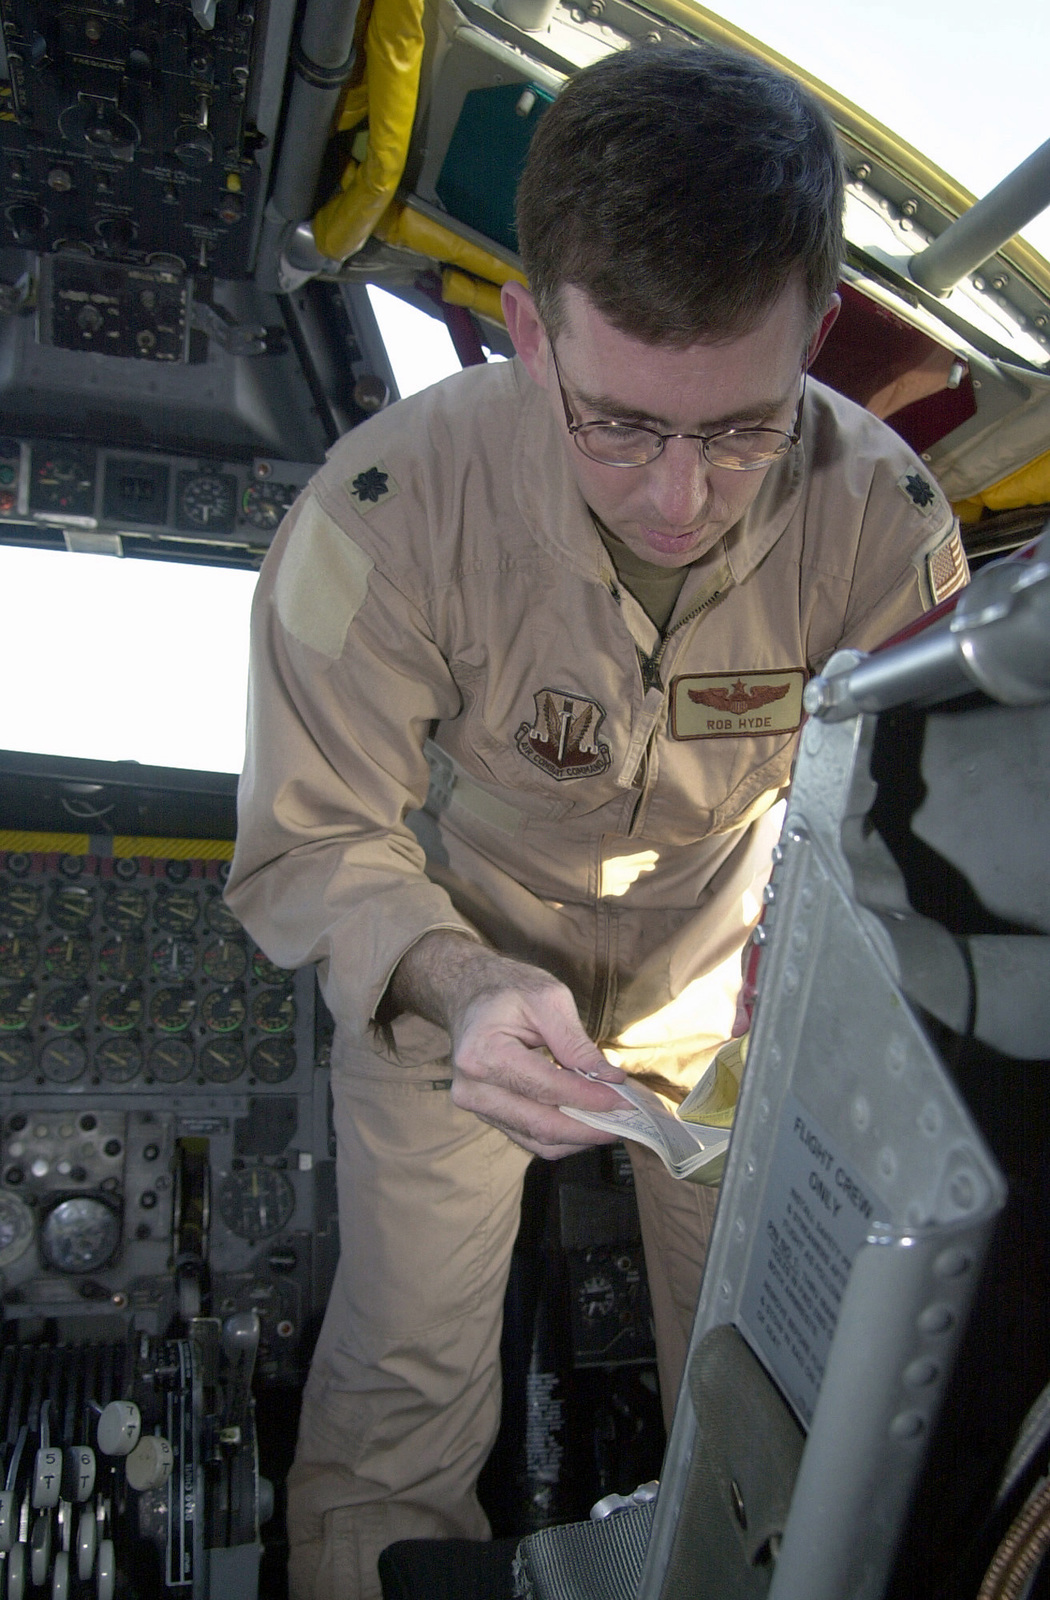 US Air Force (USAF) Lieutenant Colonel (LCOL) Robert D. Hyde, Director of Operations 23rd Expeditionary Bomb Squadron (EBS), Minot, North Dakota, performs a preflight safety check just before a B-52H Stratofortress Bomber flight